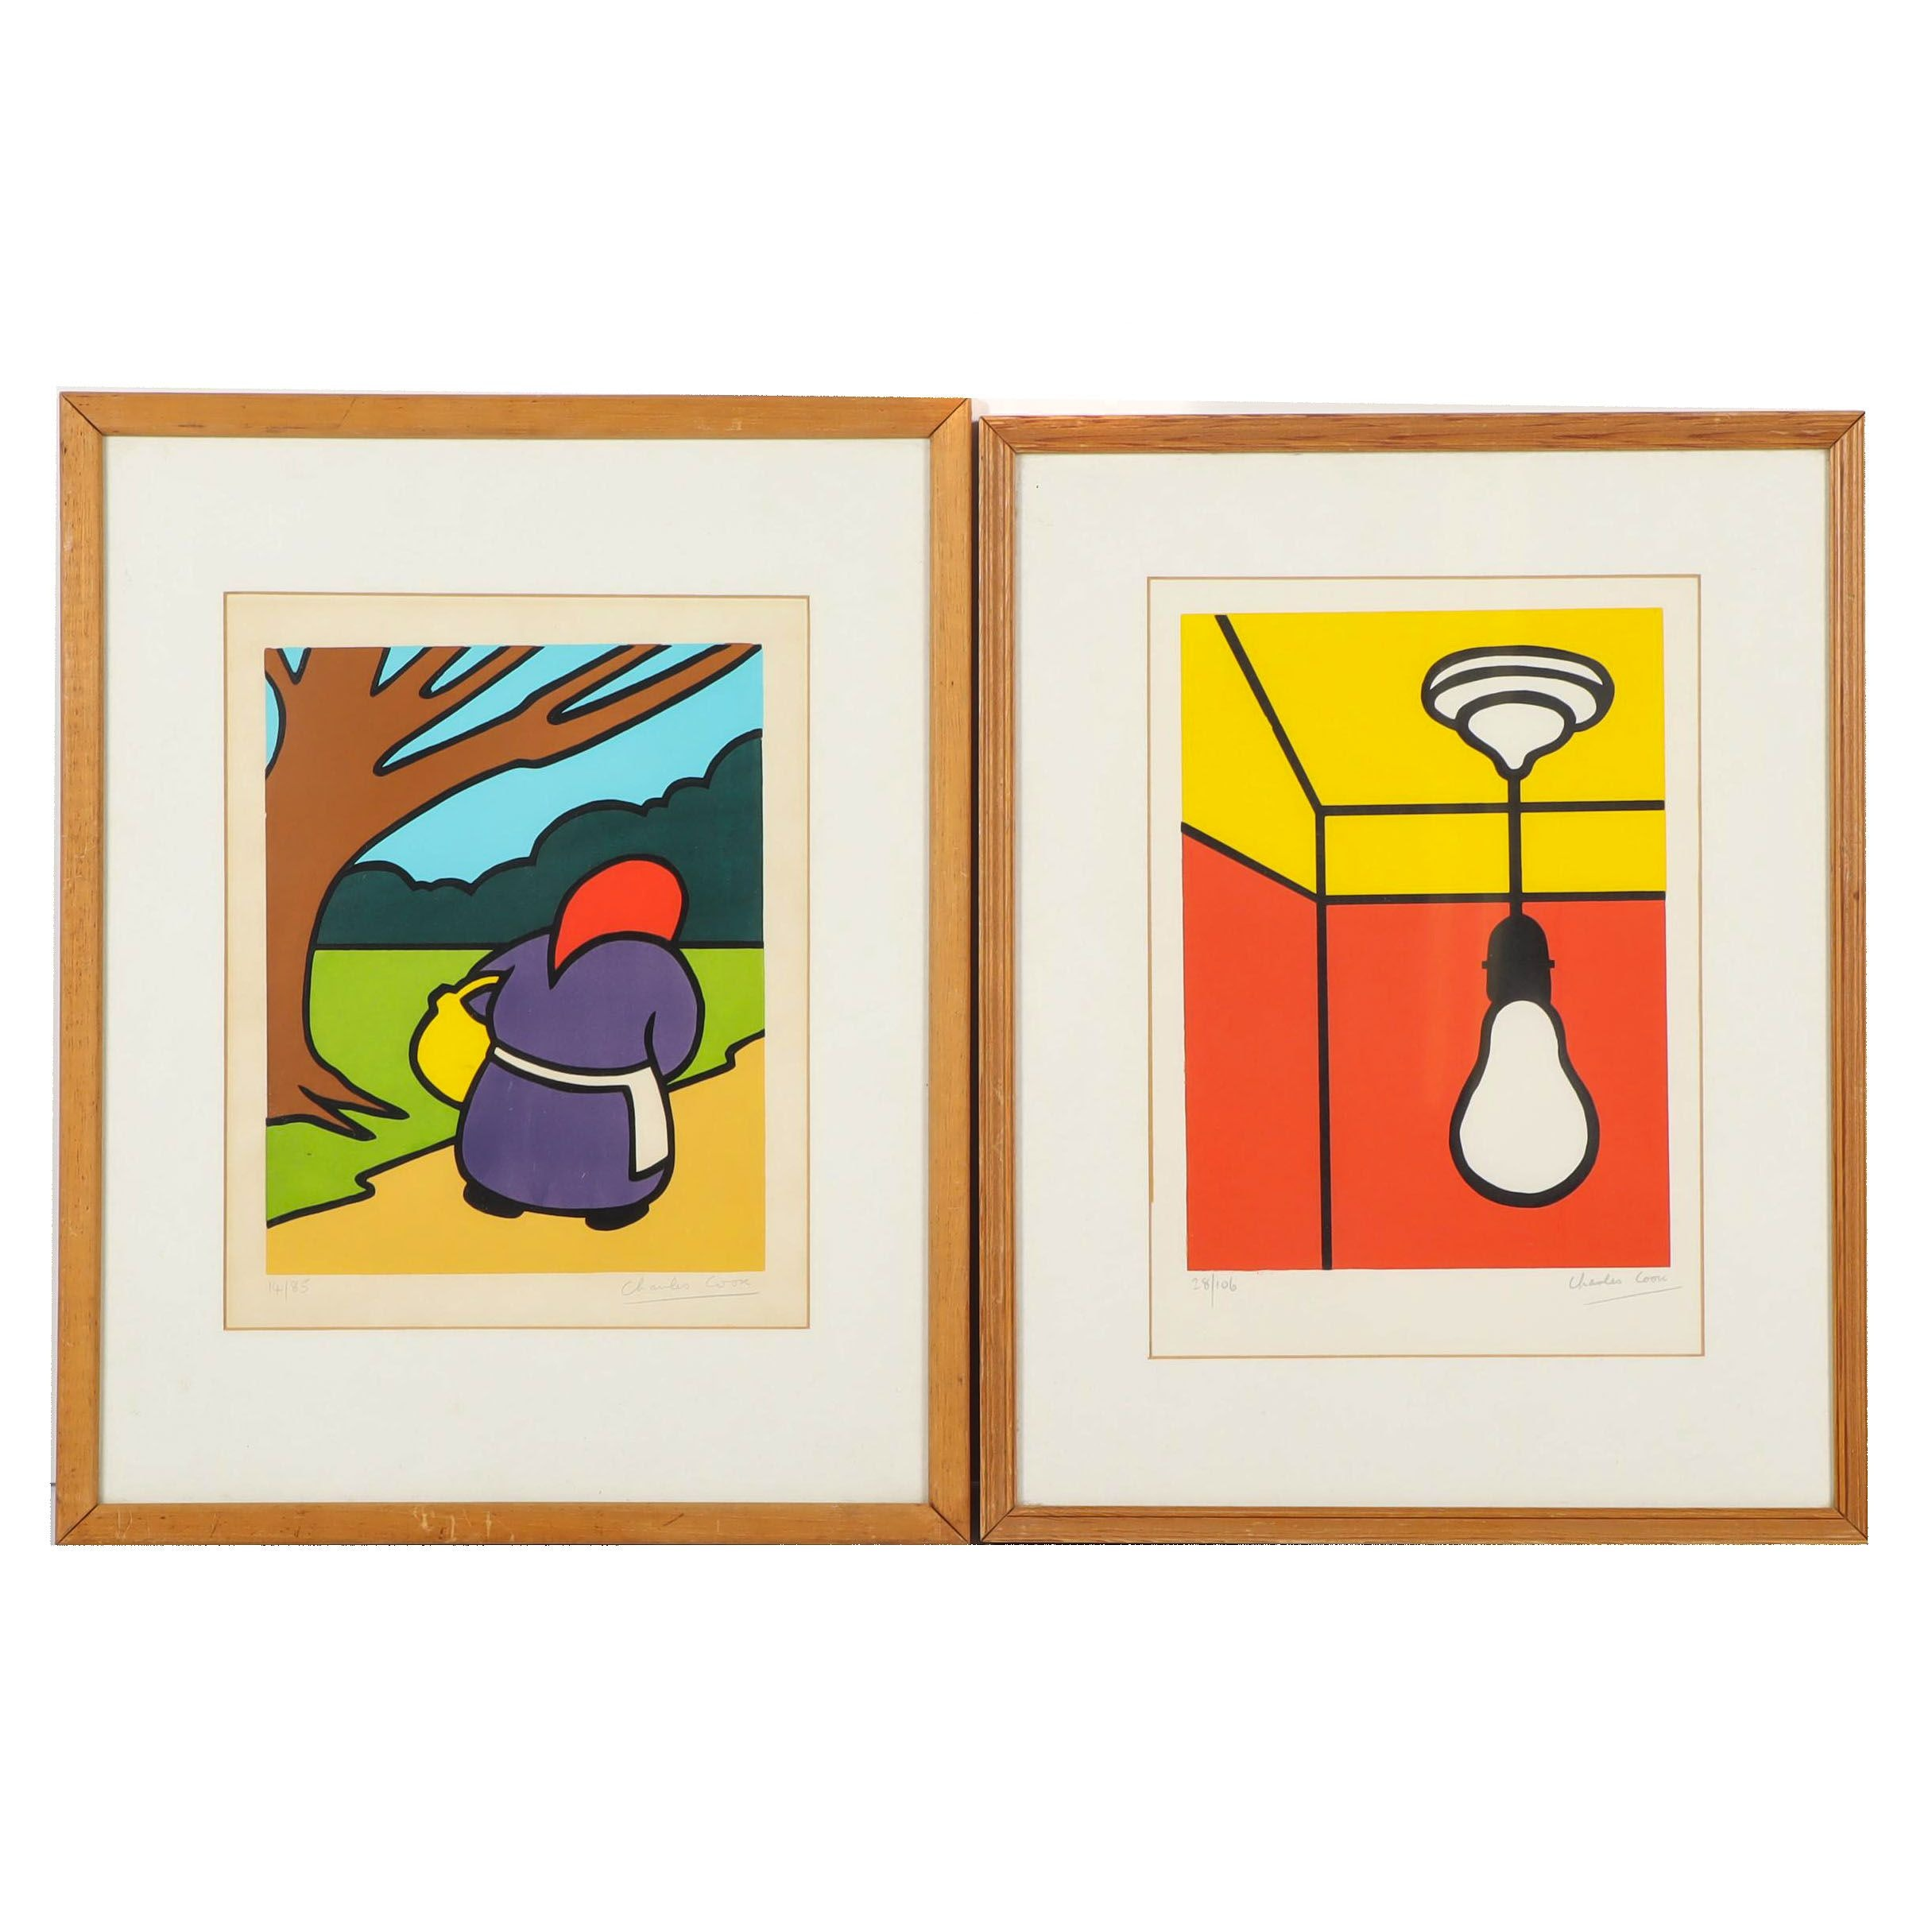 Charles Cook Serigraphs of a Light Bulb and Woman Walking in Park